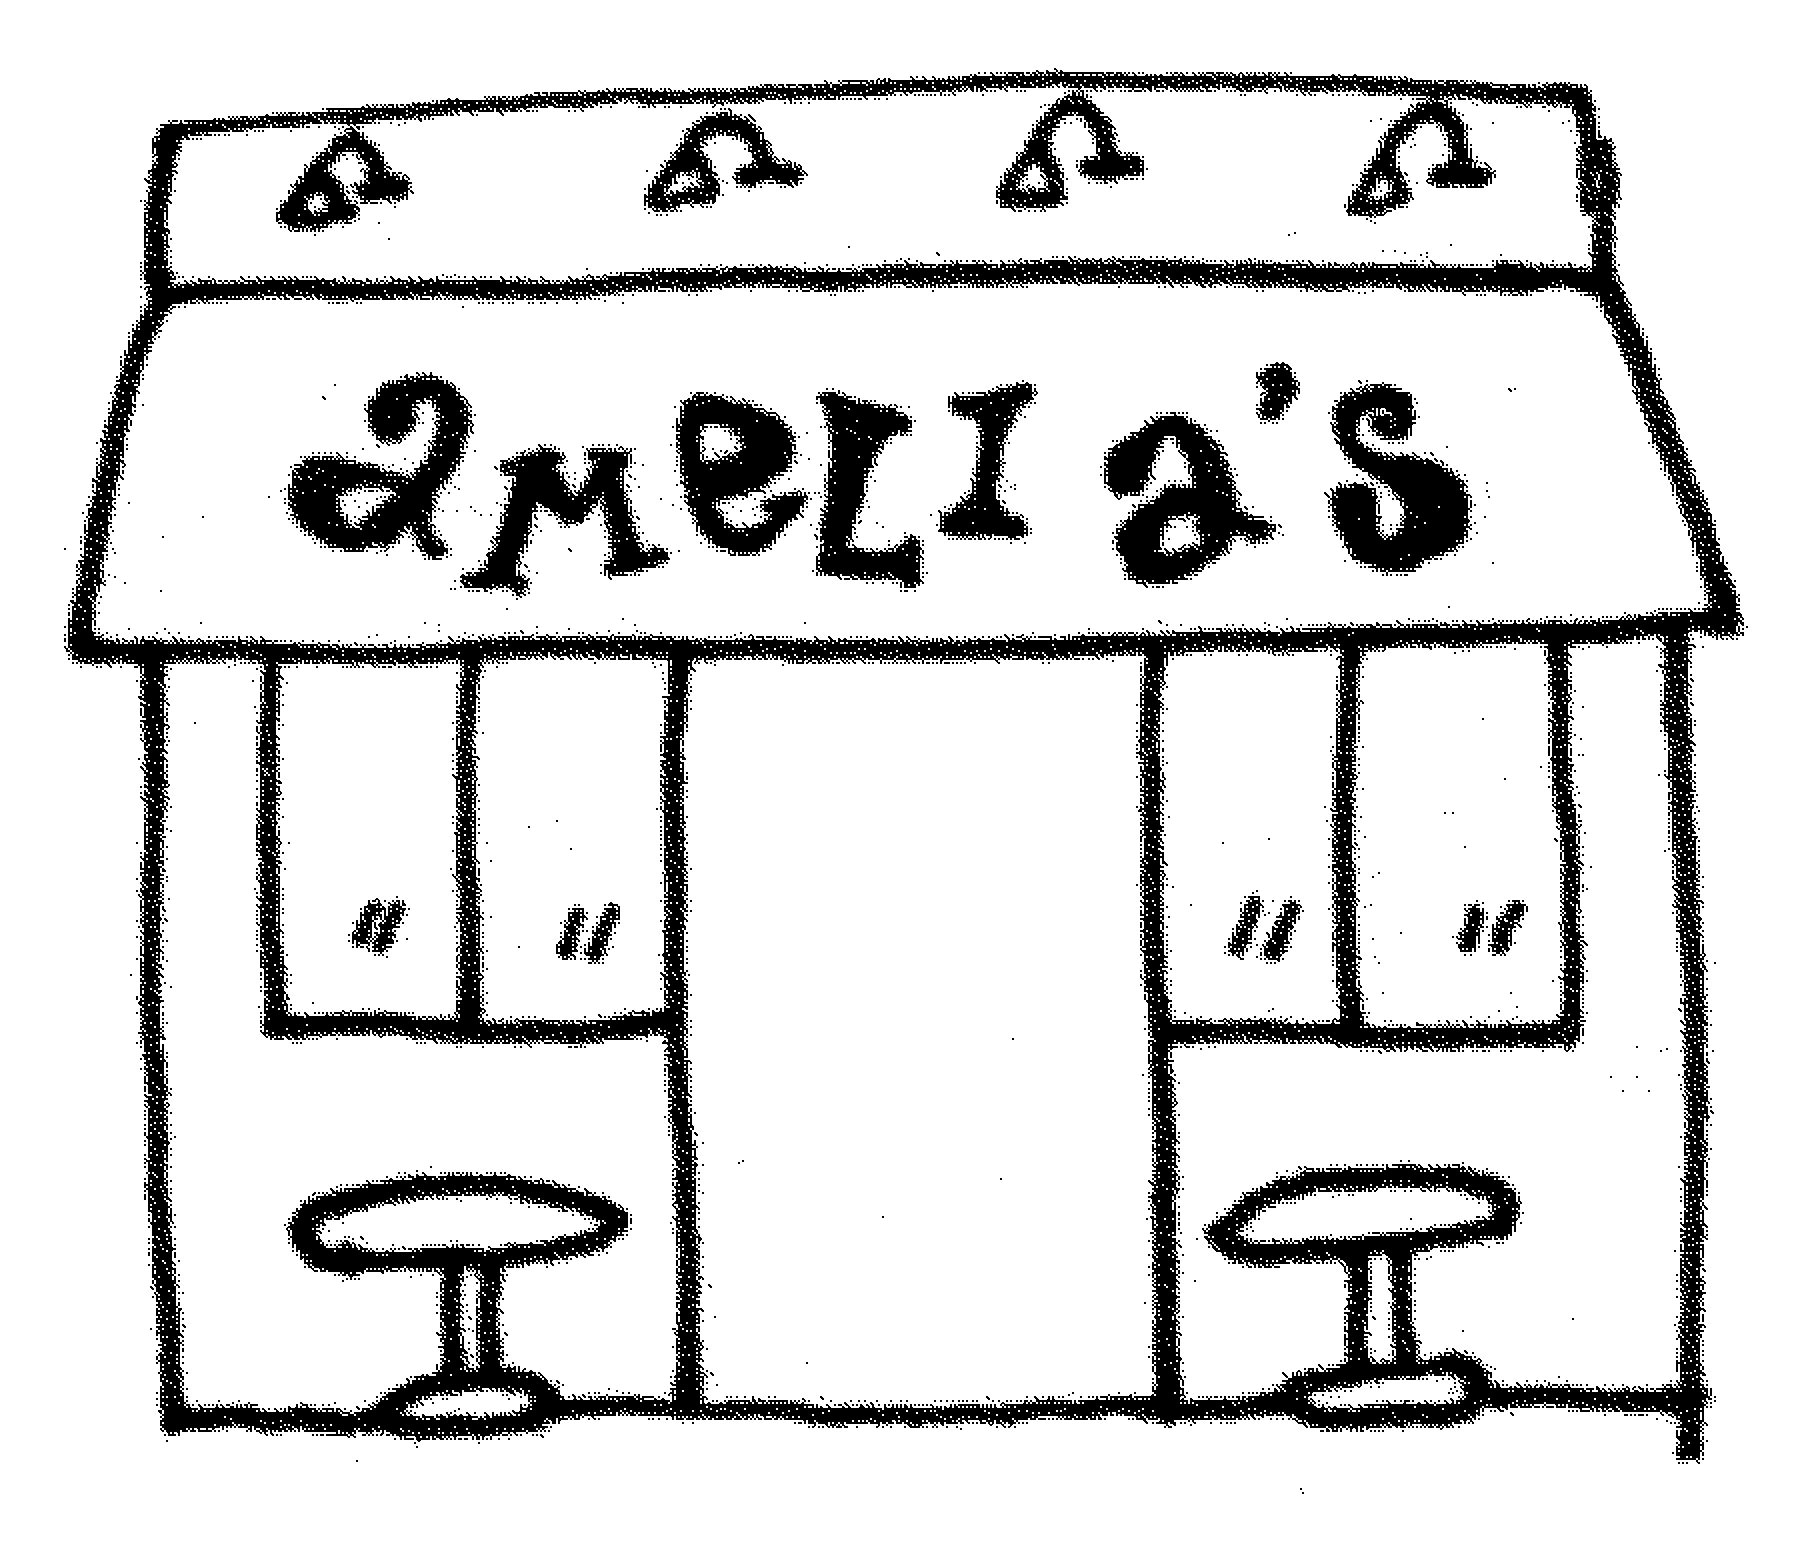 Restaurant Colouring Pages Page 2 Restaurant Coloring Pages to Print Of Imprimer Coloriage tous Au Restaurant 2016 to Print